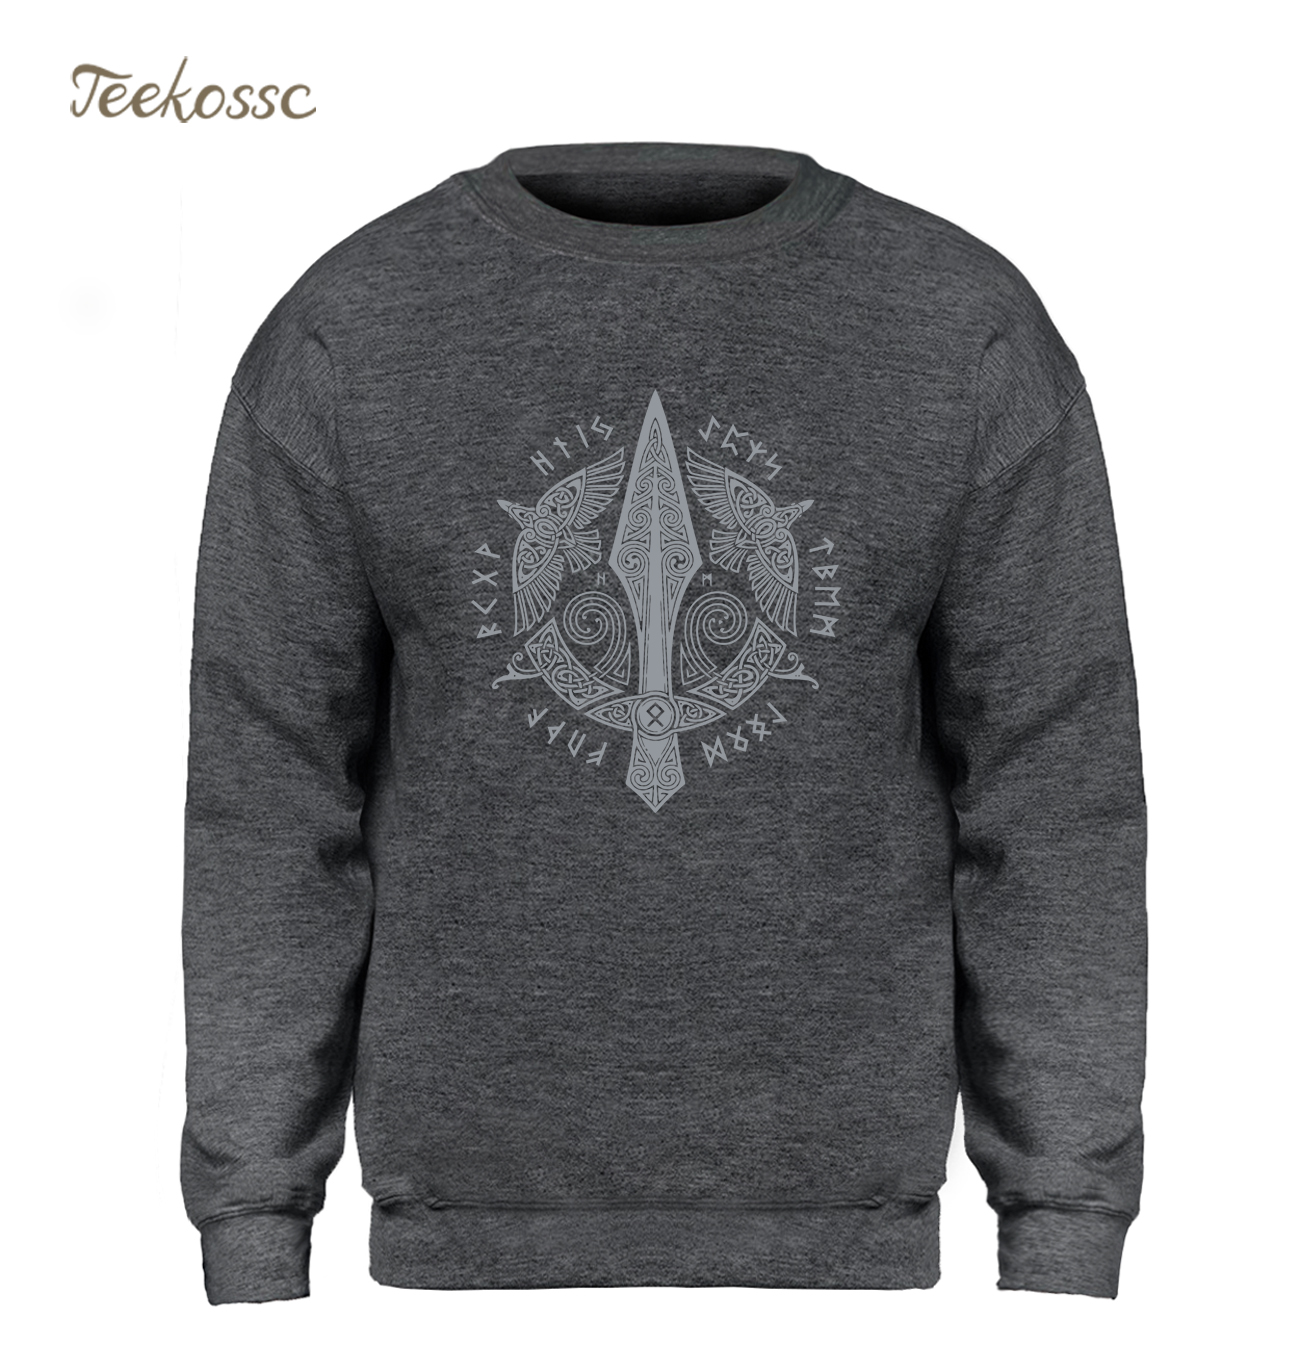 Odin Vikings Sweatshirt Men Viking Berserker Stylish Hoodie Crewneck Sweatshirts Winter Autumn Black Streetwear Cool Loose Mens